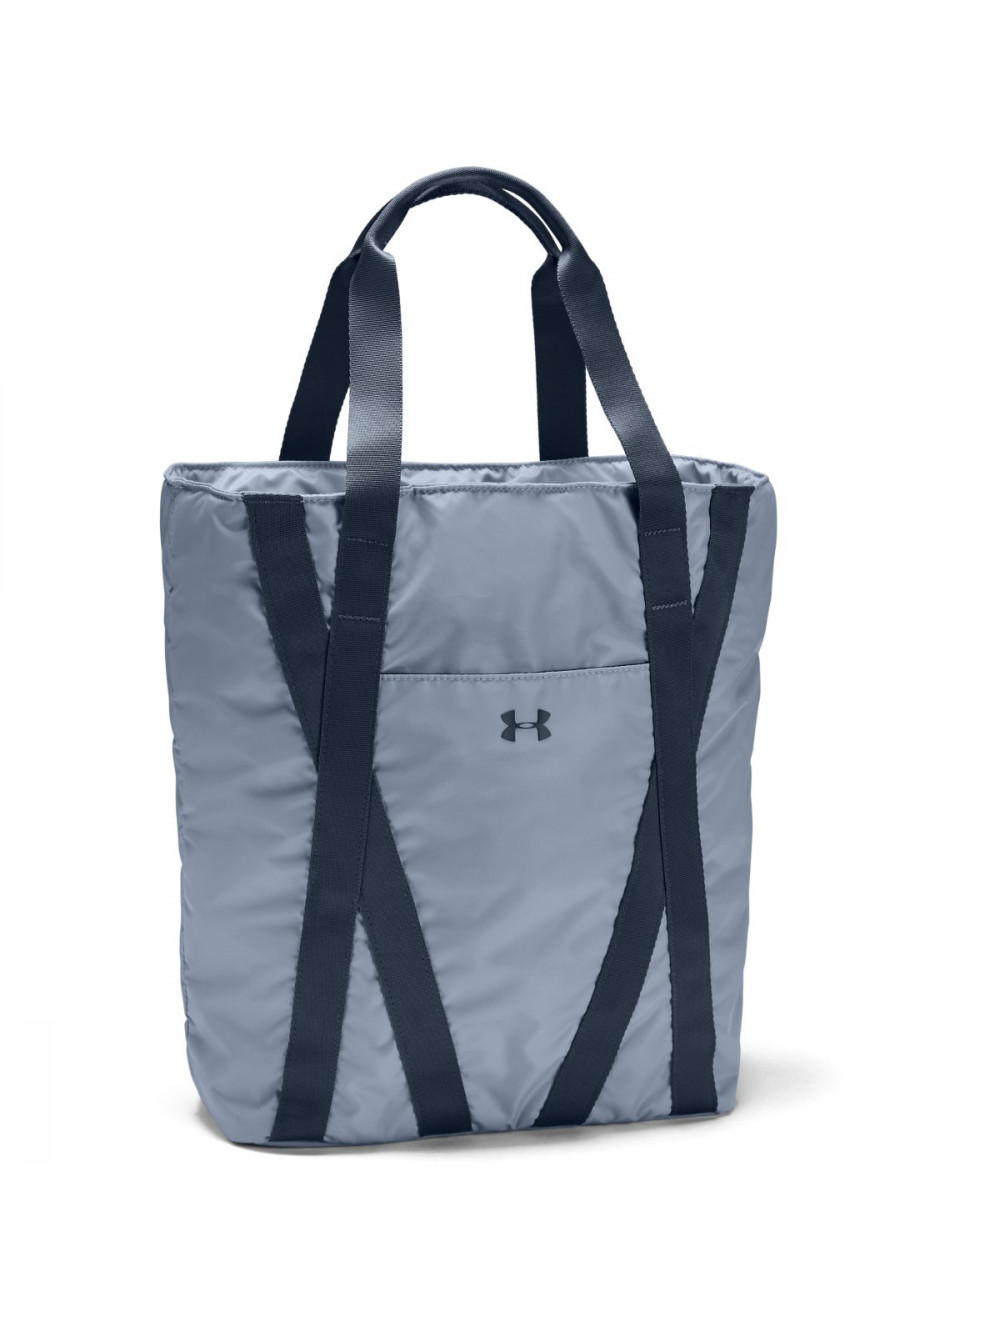 Dámska taška Under Armour Essentials Zip Tote modrosivá